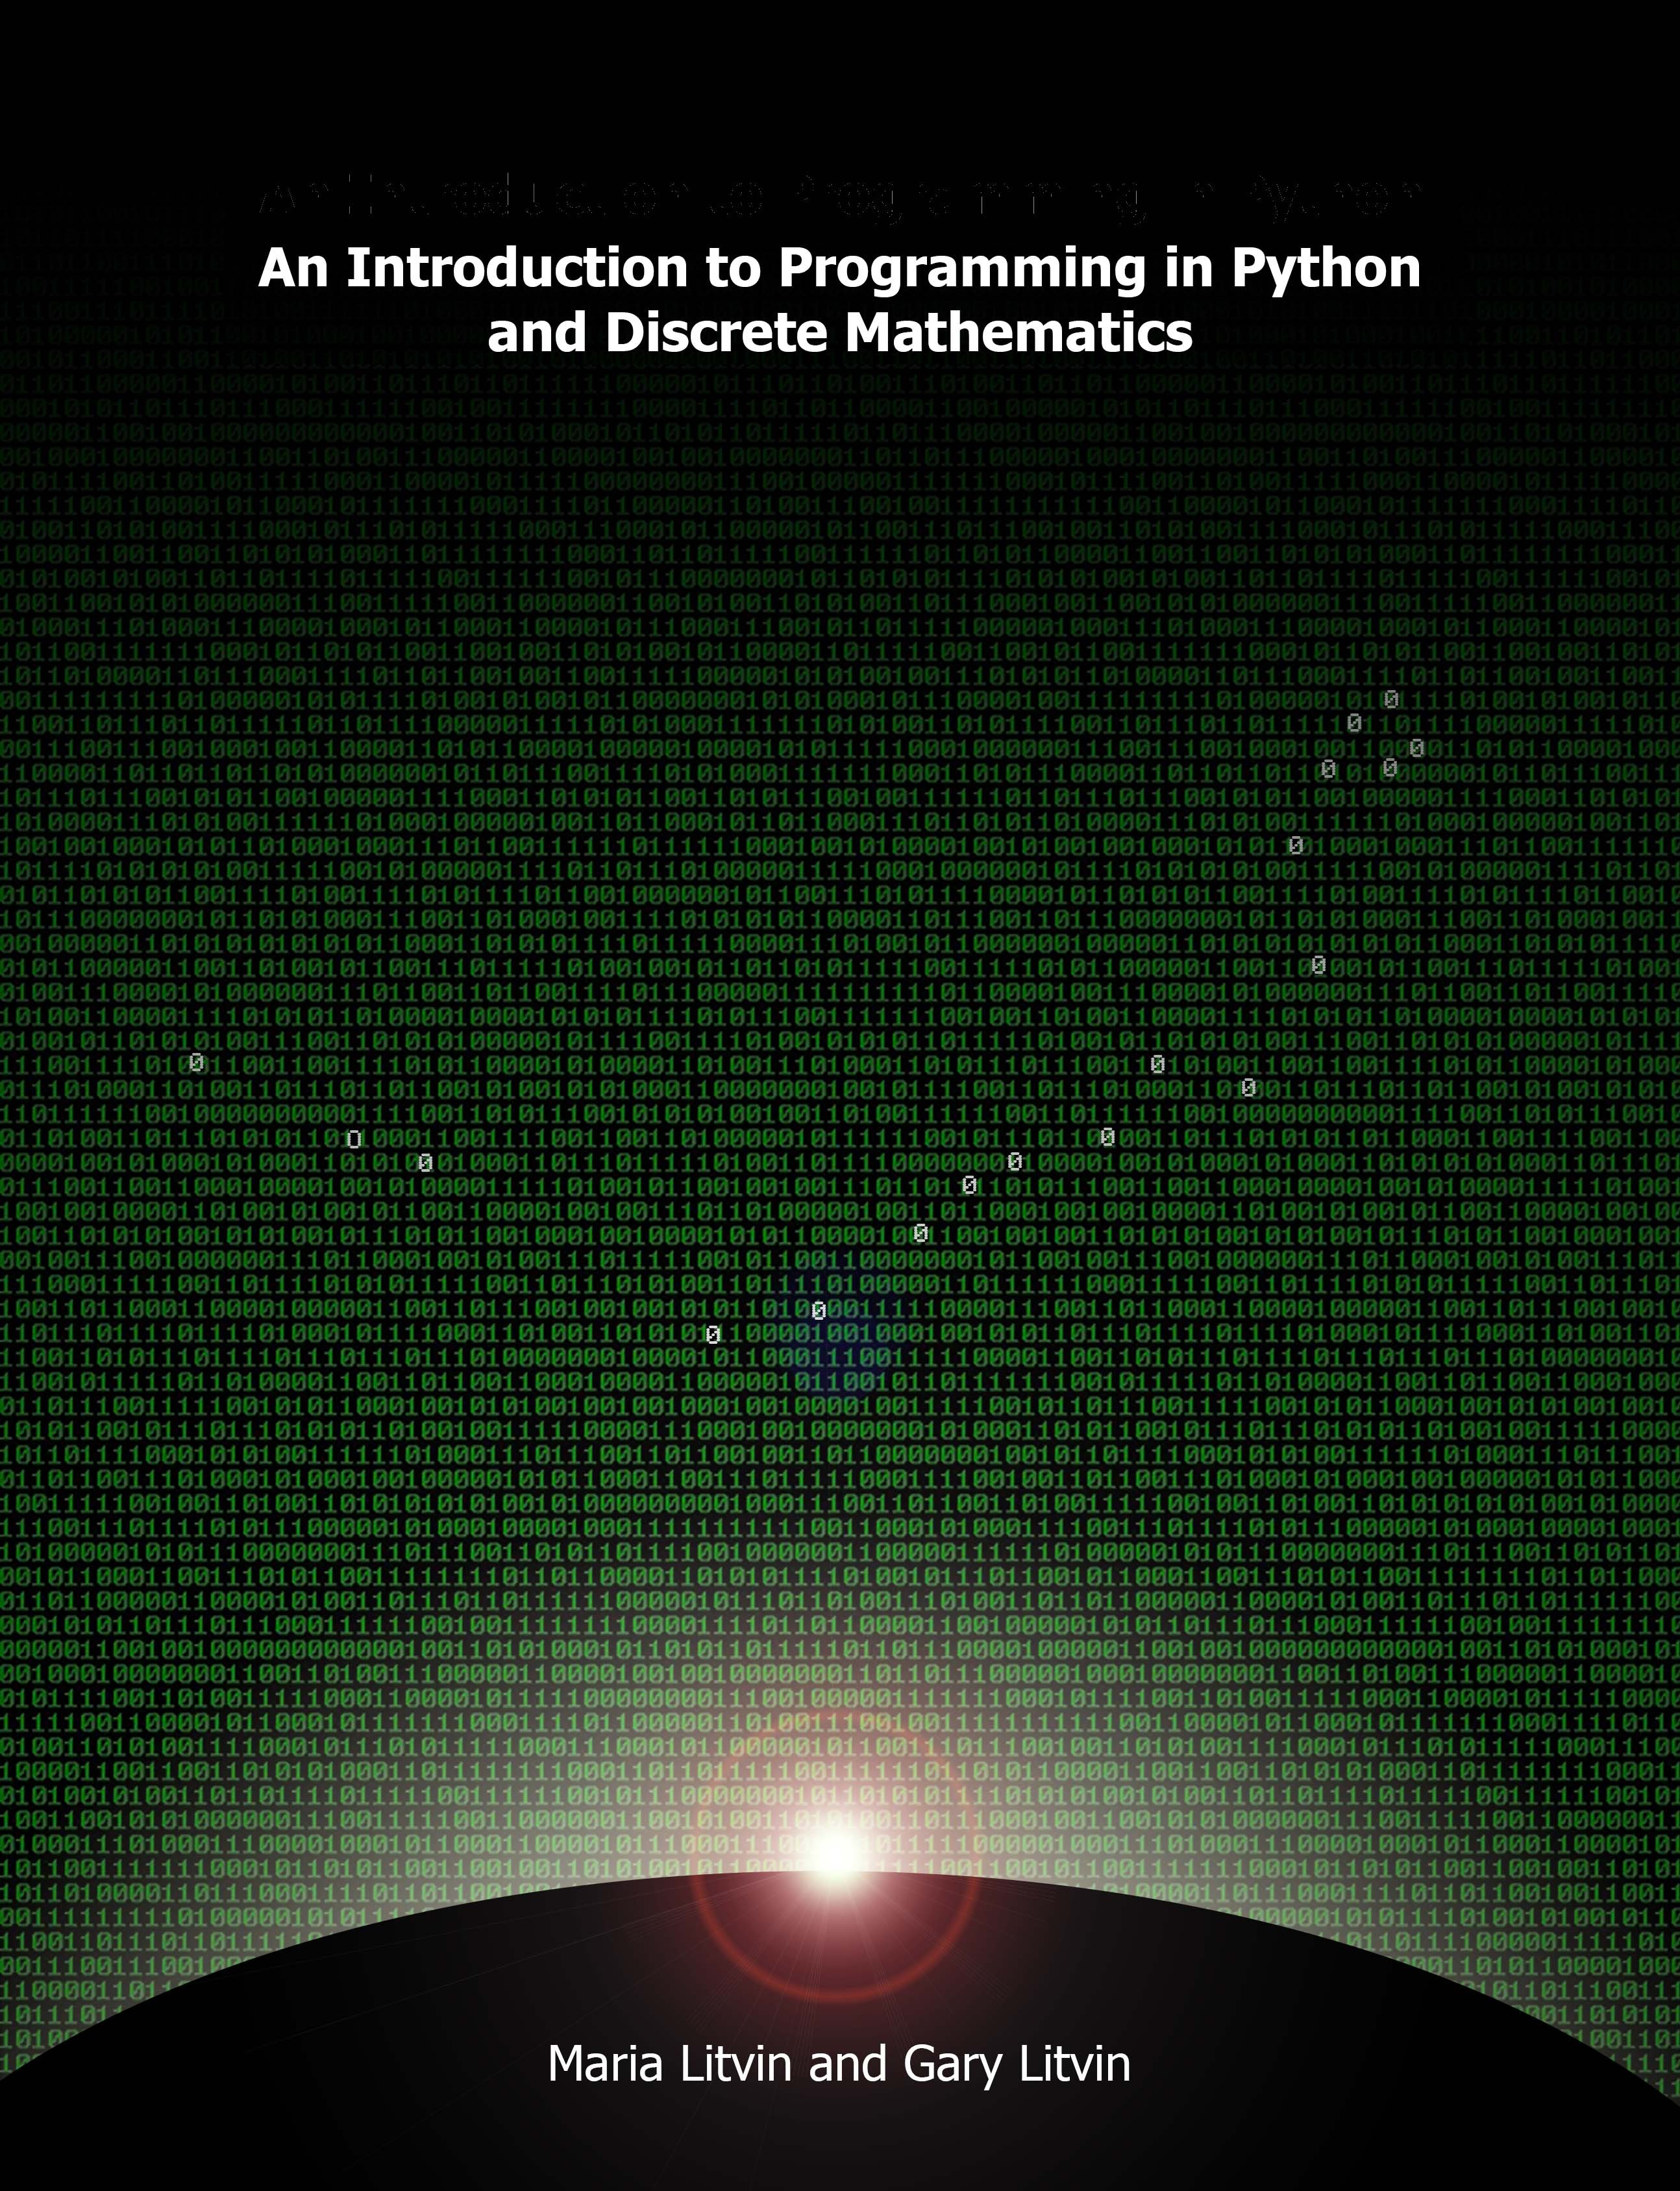 An Introduction to Programming in Python and Discrete Mathematics